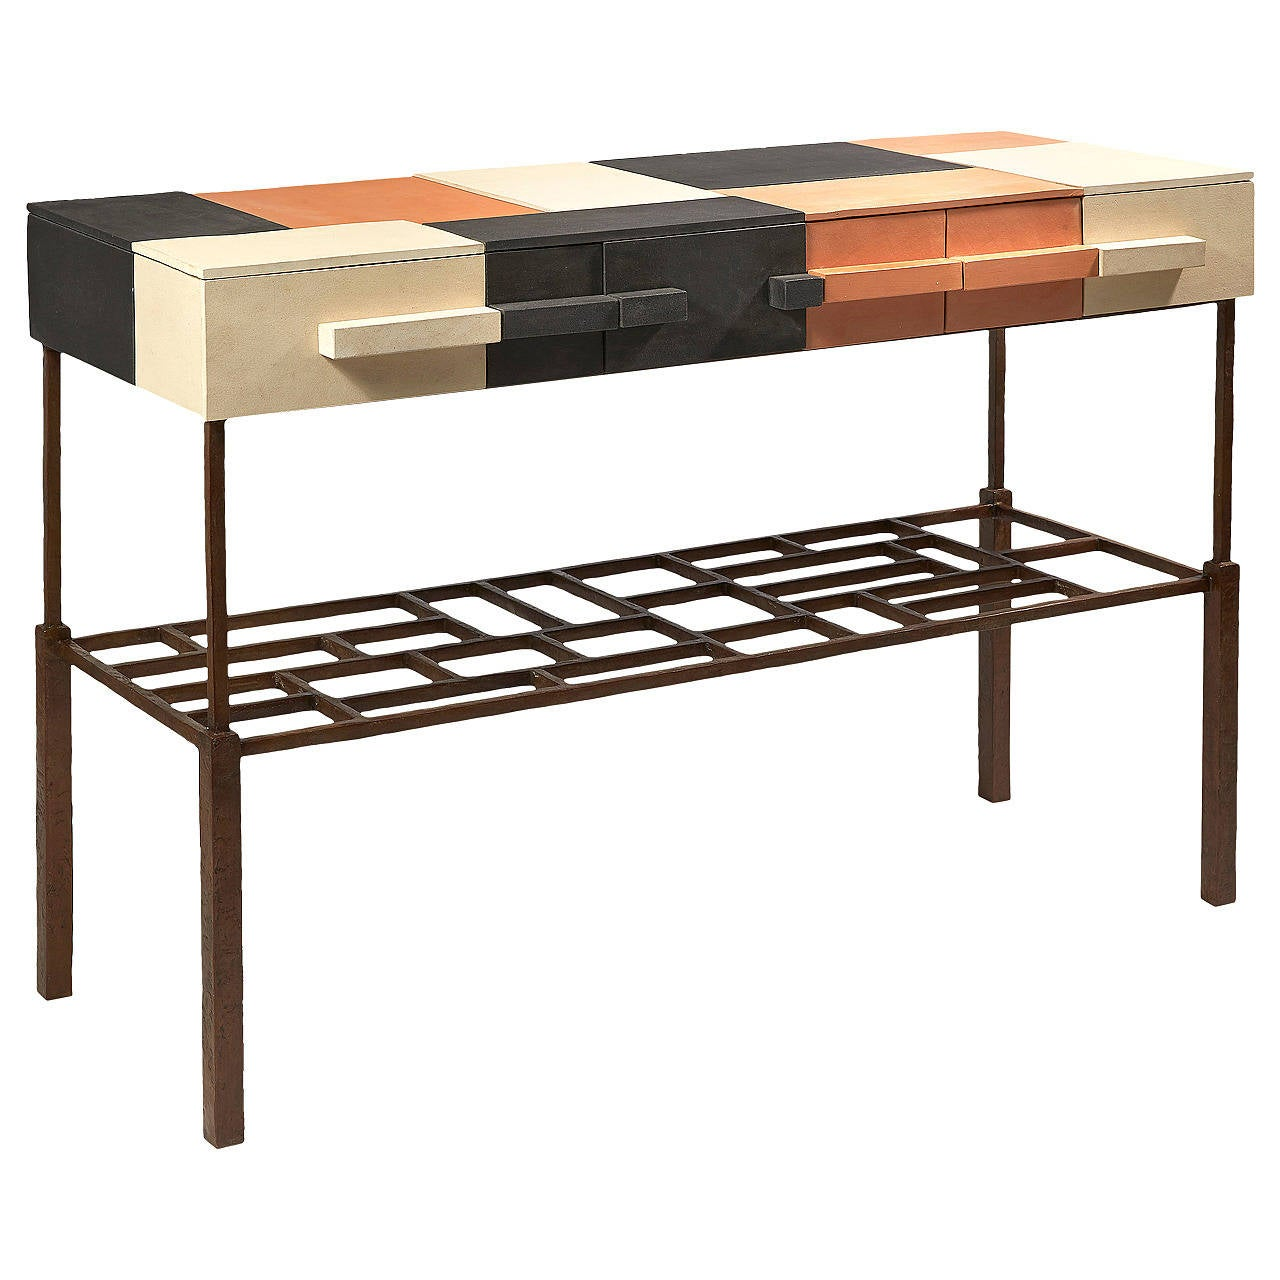 Terracotta Console by Mattia Bonetti. In stock. Cat-Berro Gallery Paris